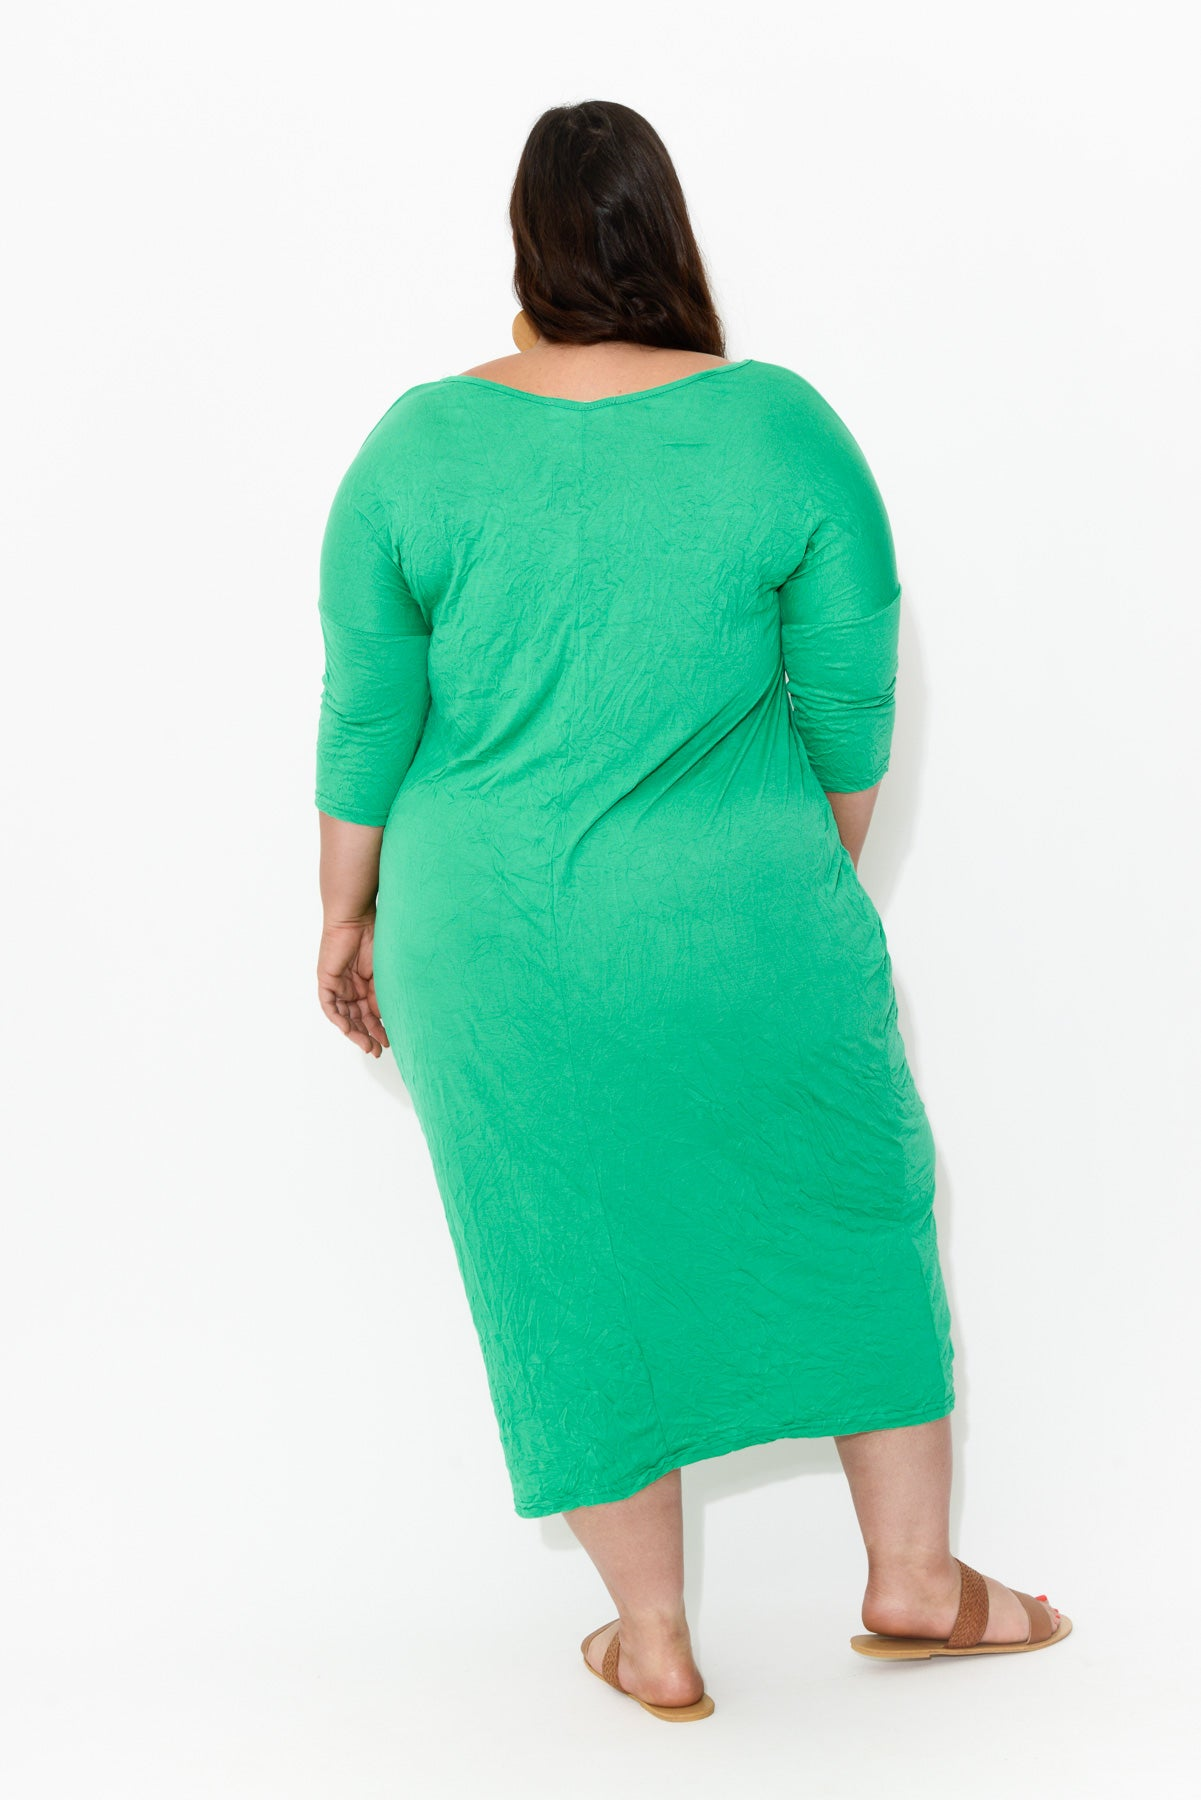 Green Sleeved Pocket Cotton Dress - Blue Bungalow